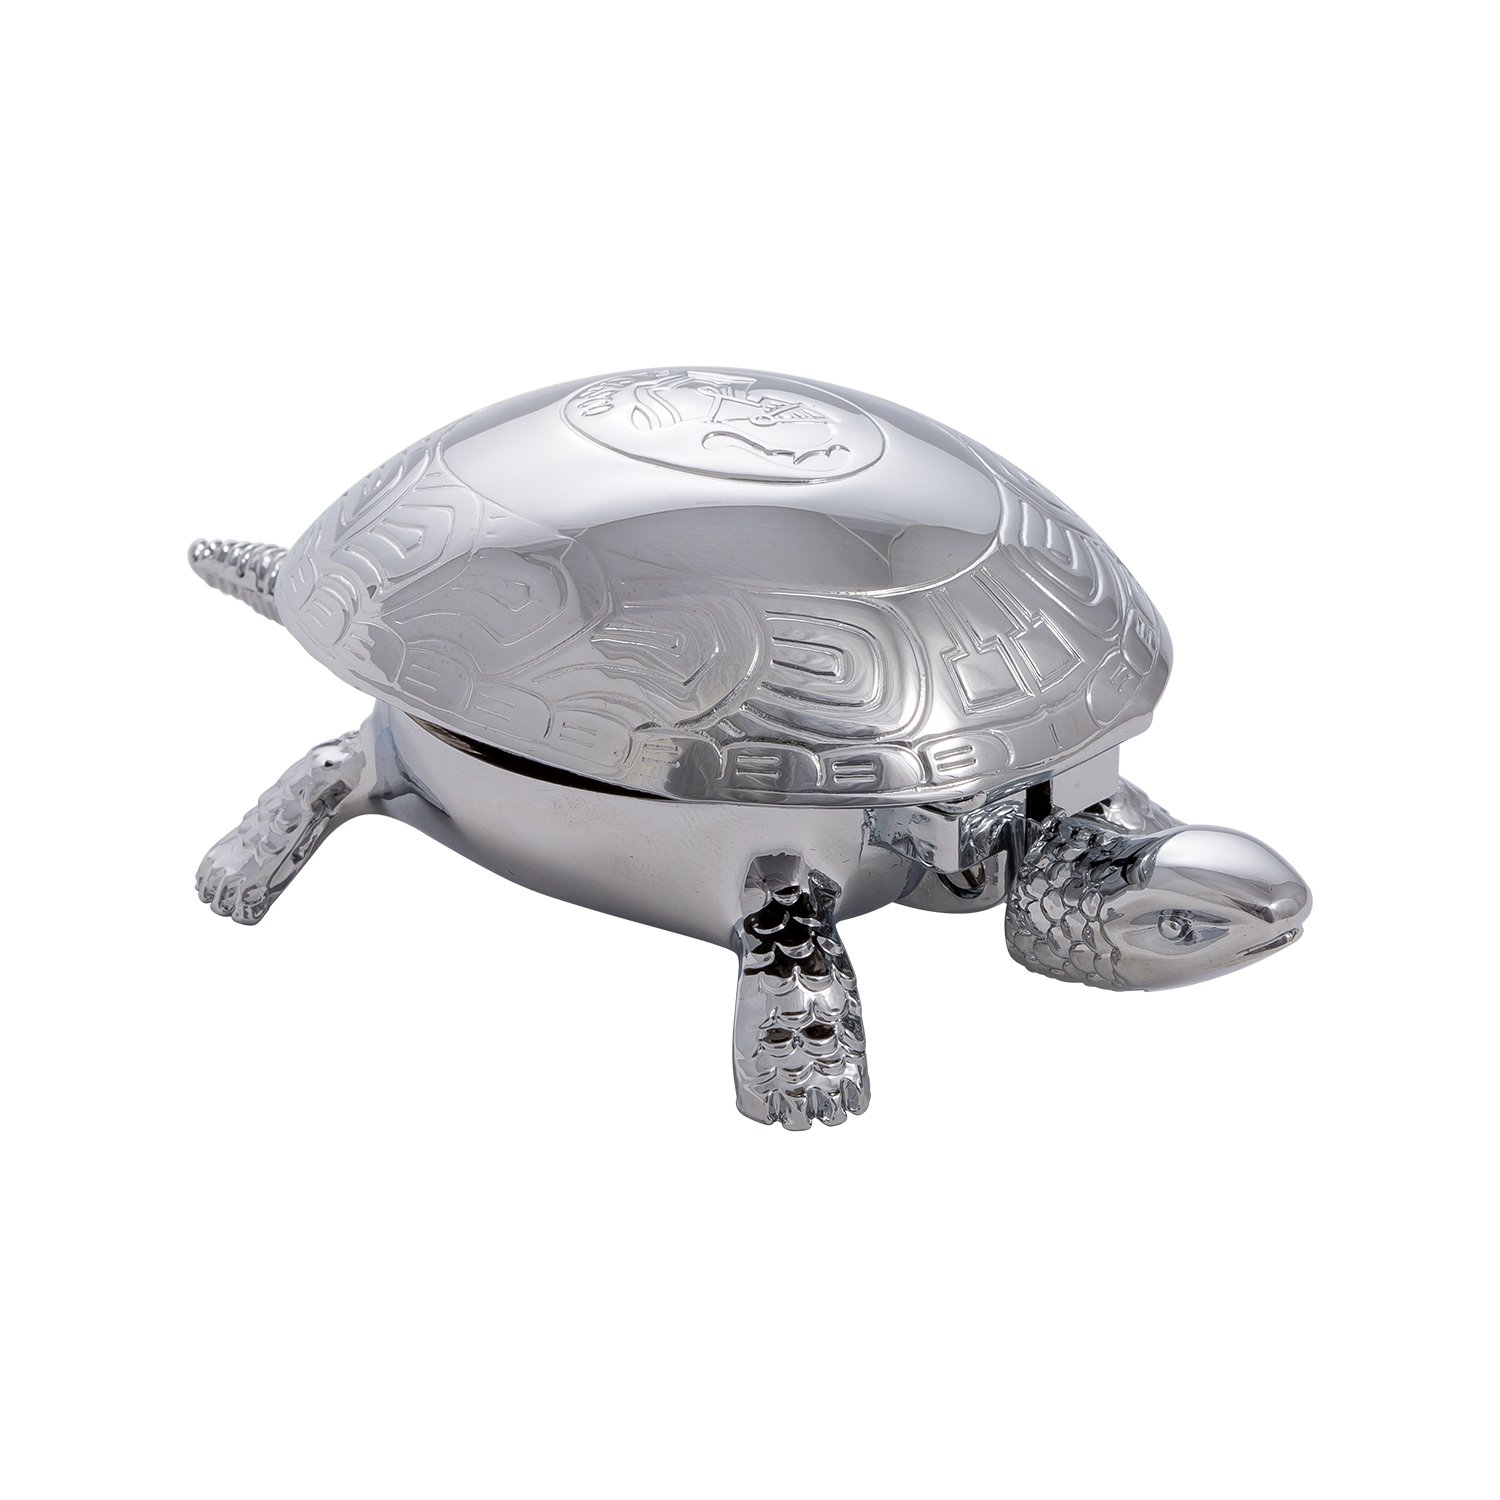 El Casco Turtle Bell Silver Plated With Chrome